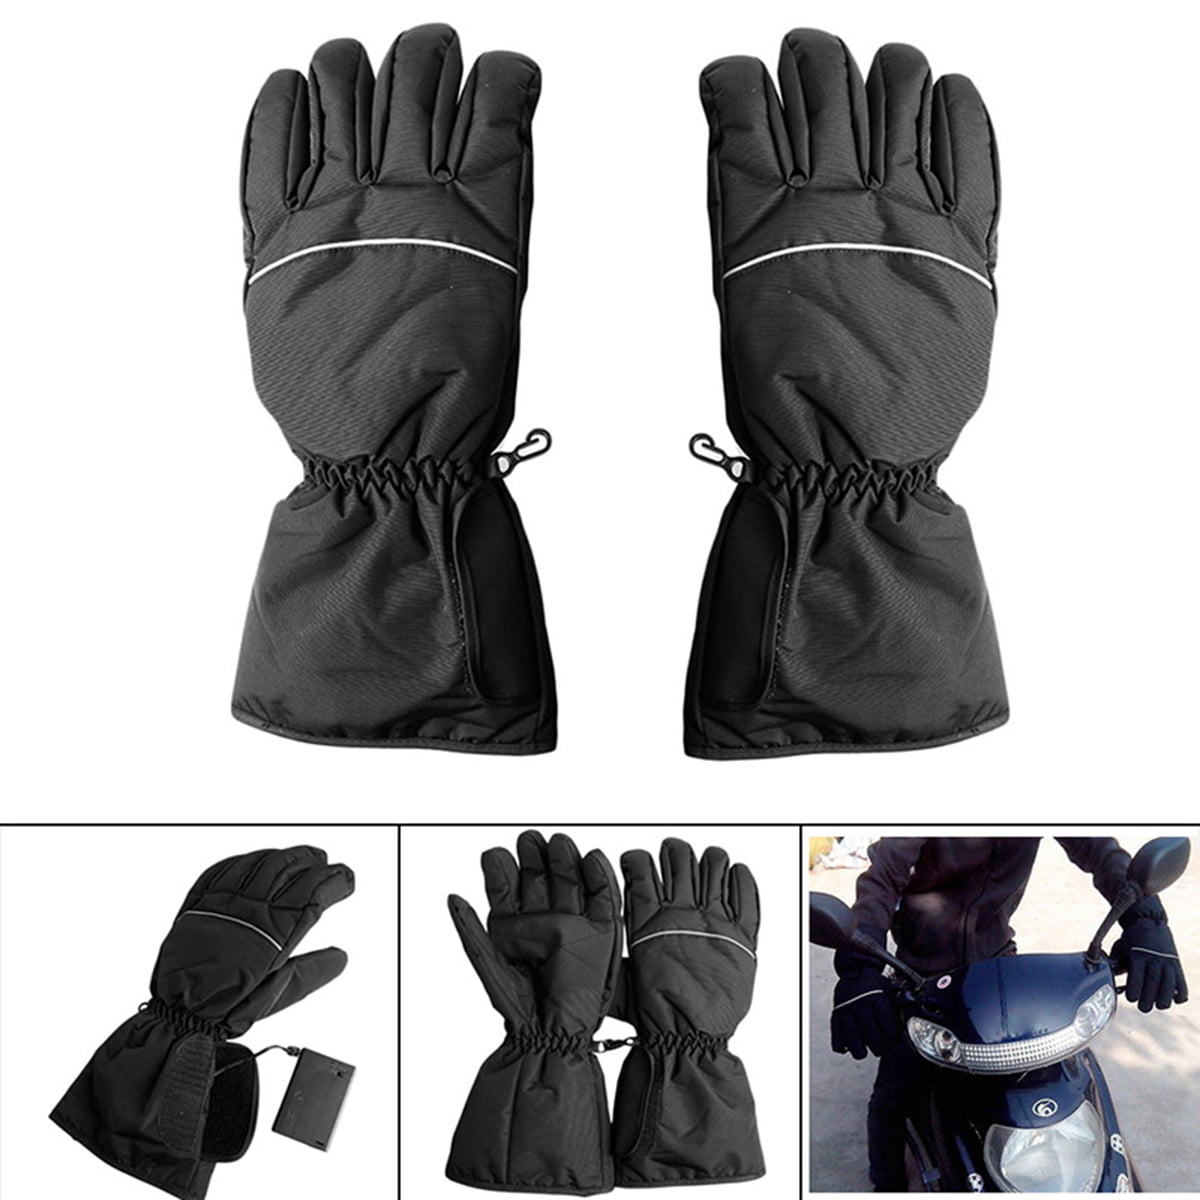 Winter Warm Battery Powered Electric Heated Gloves Waterproof Motorcycle Hunting